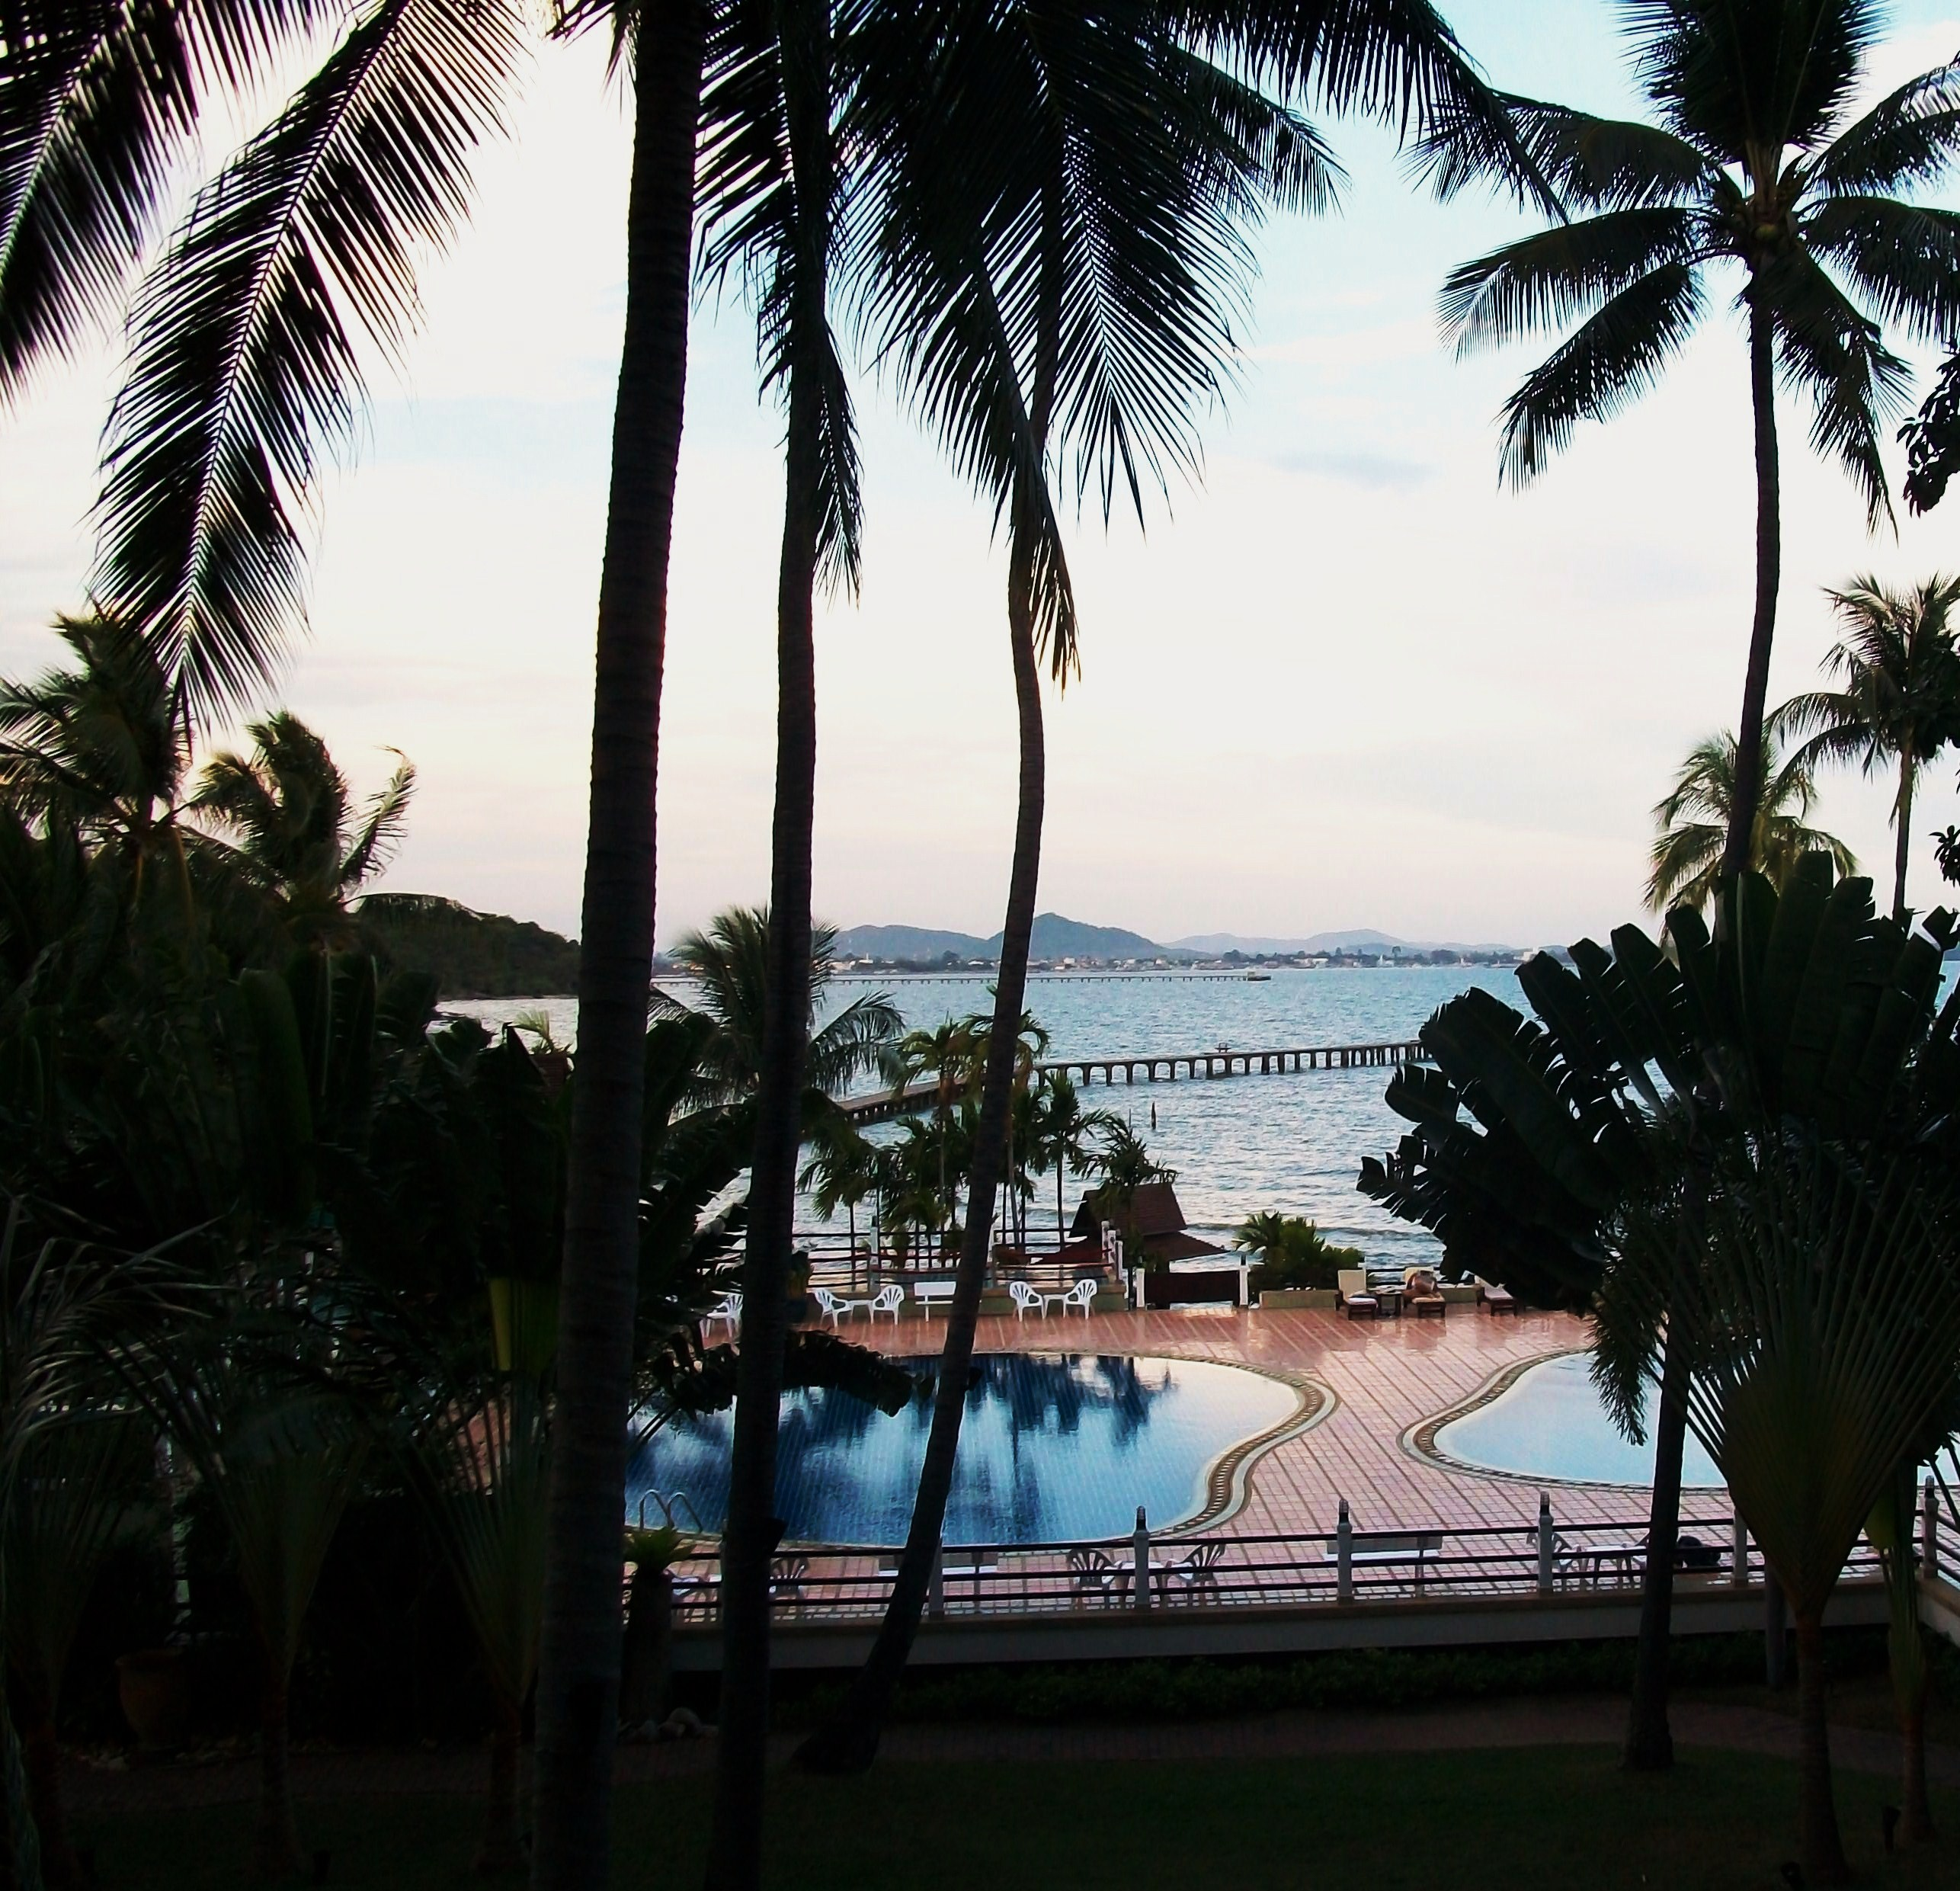 Tropical Swimming Pool, Asia, Asian, Tropical, Trees, HQ Photo